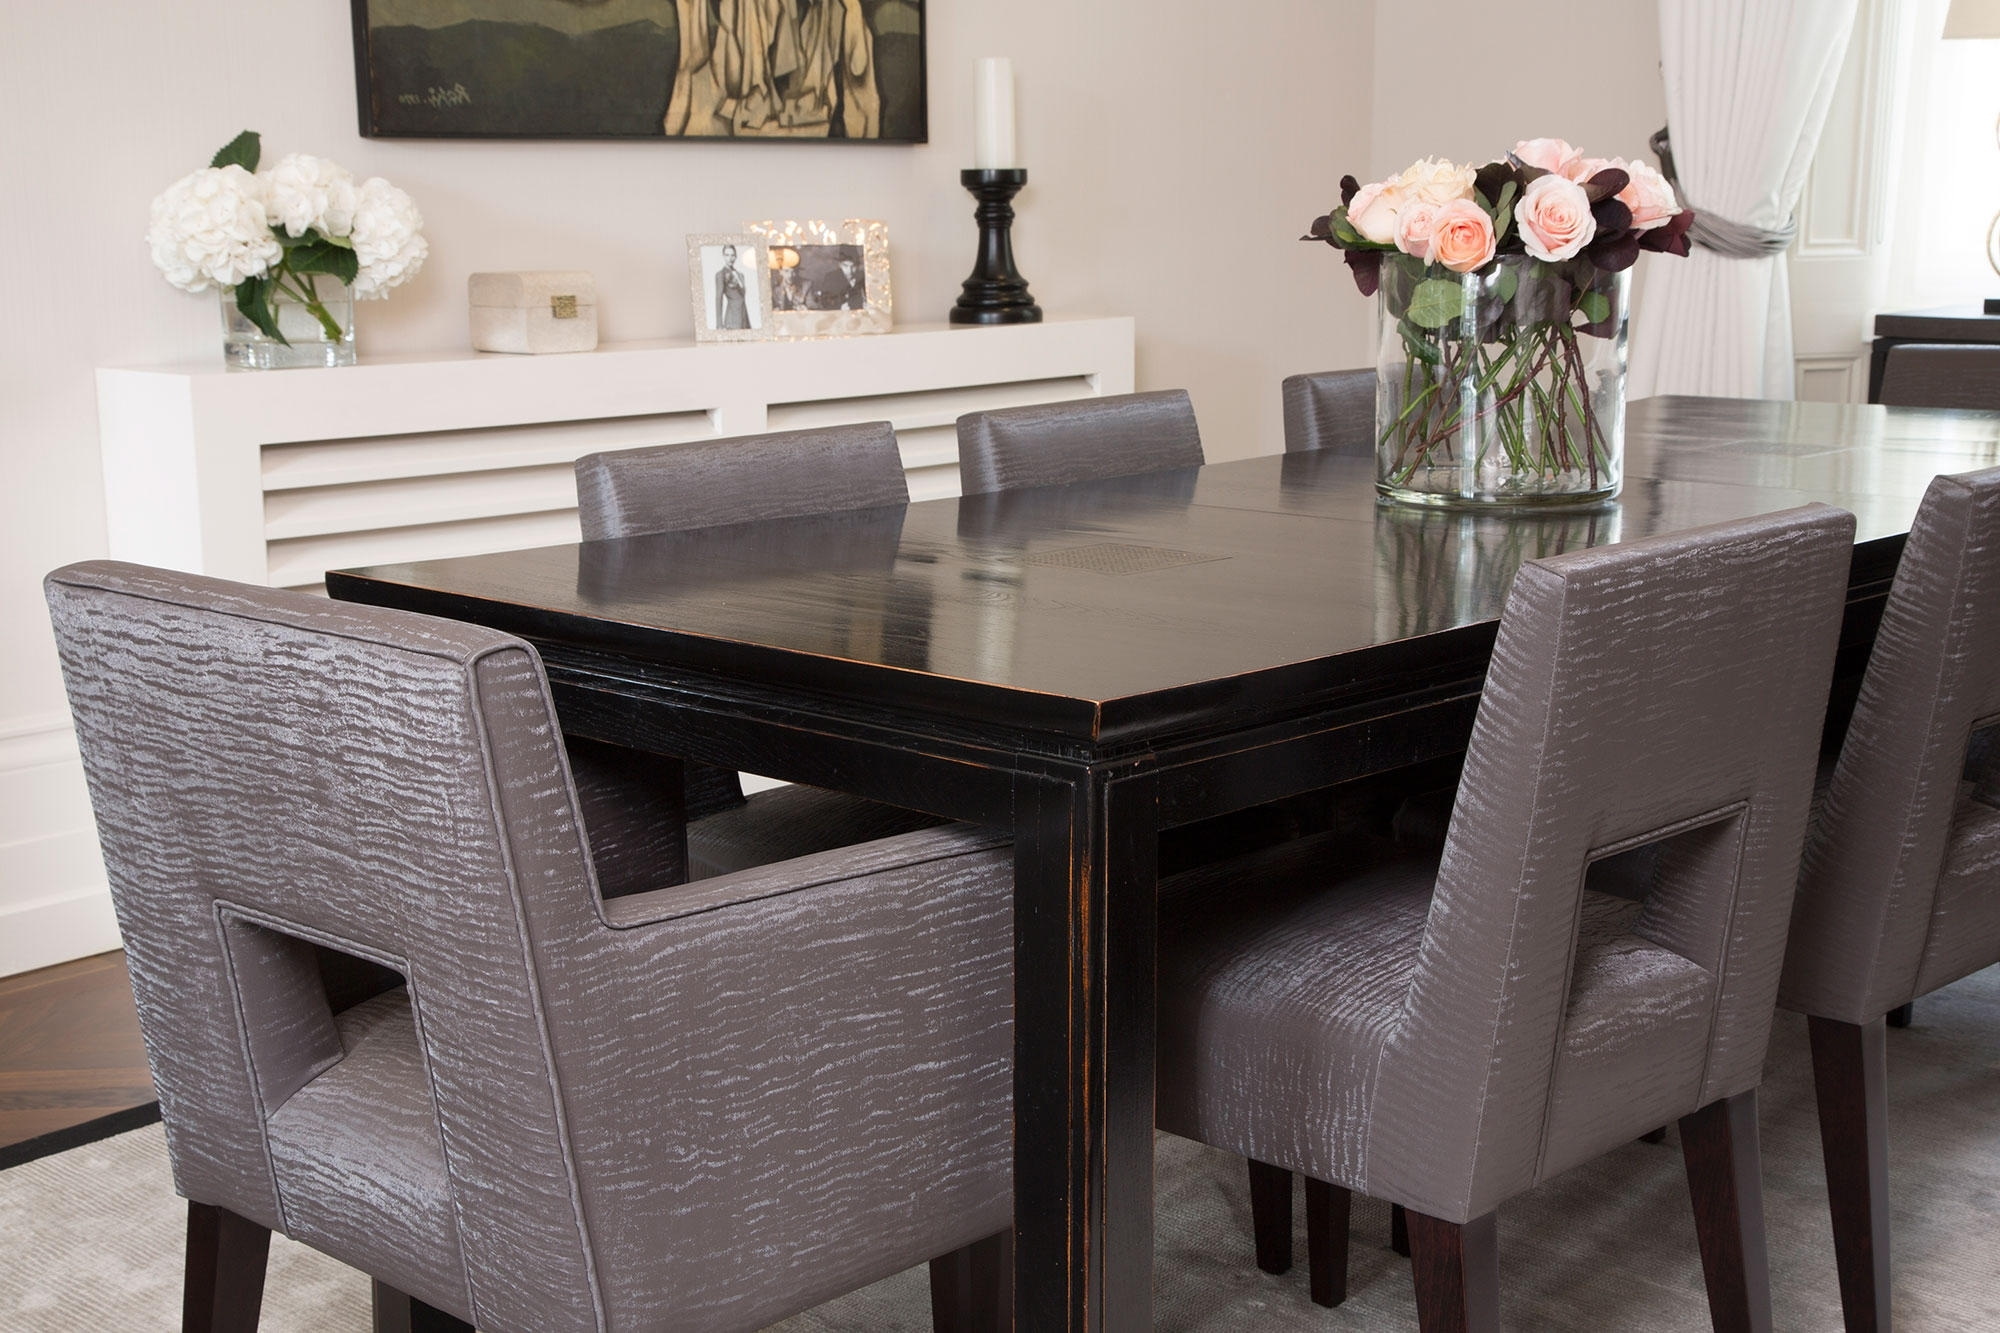 Hugo Dining Chair – Restaurant Chairs From The Sofa & Chair With Regard To Best And Newest Dining Sofa Chairs (View 12 of 20)